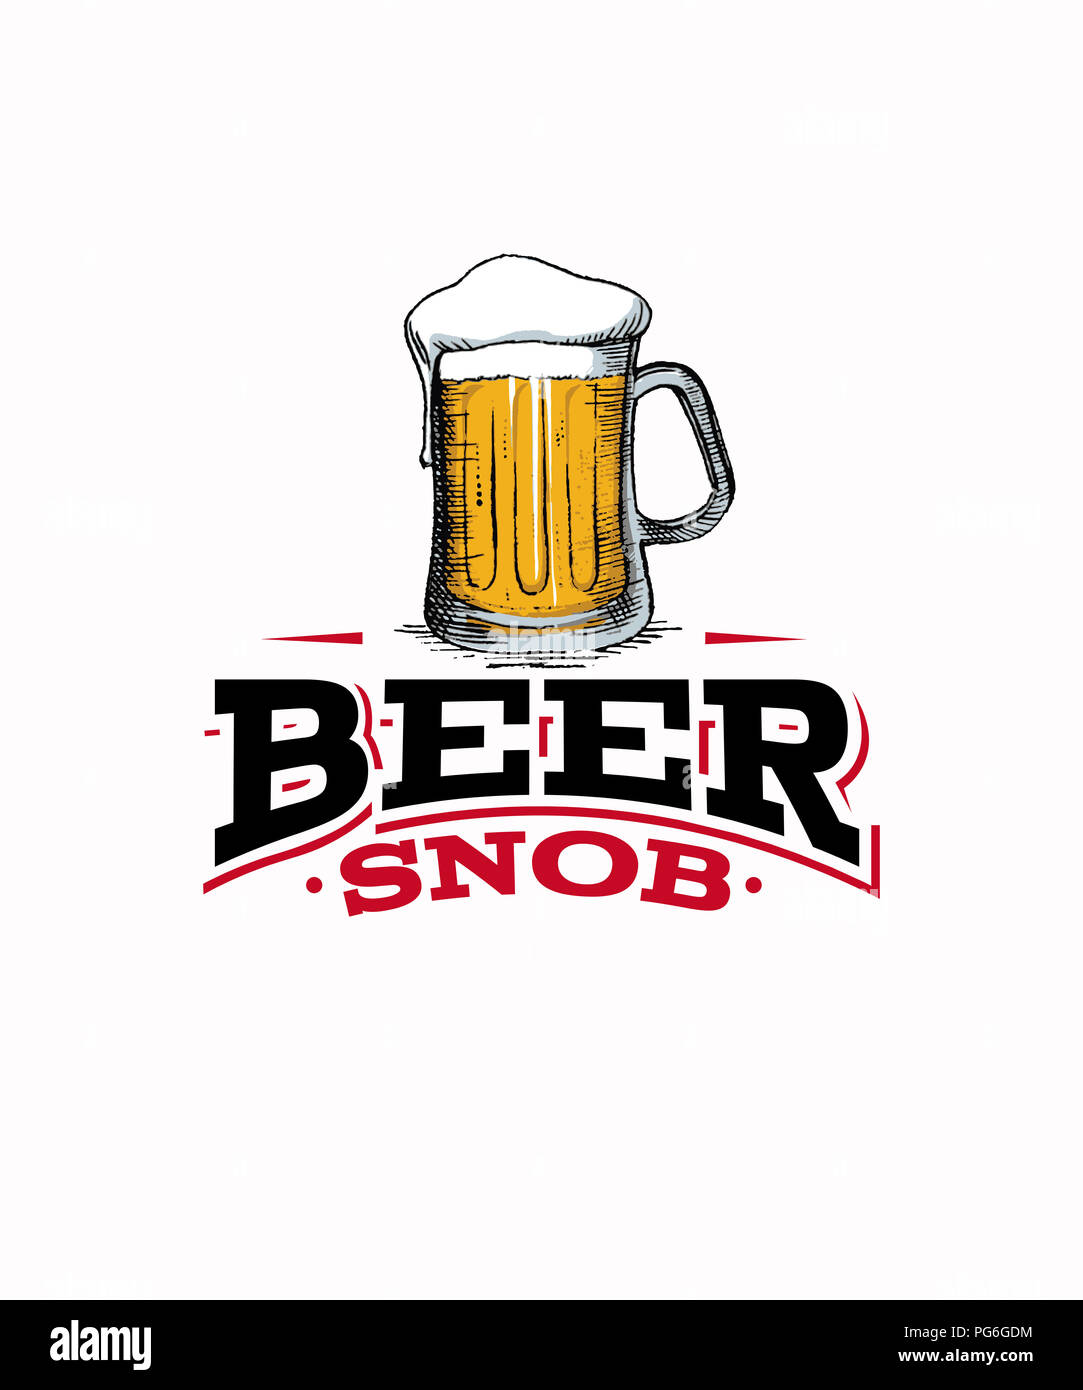 Beer snob graphic with a tall mug of beer on a white background illustration - Stock Image